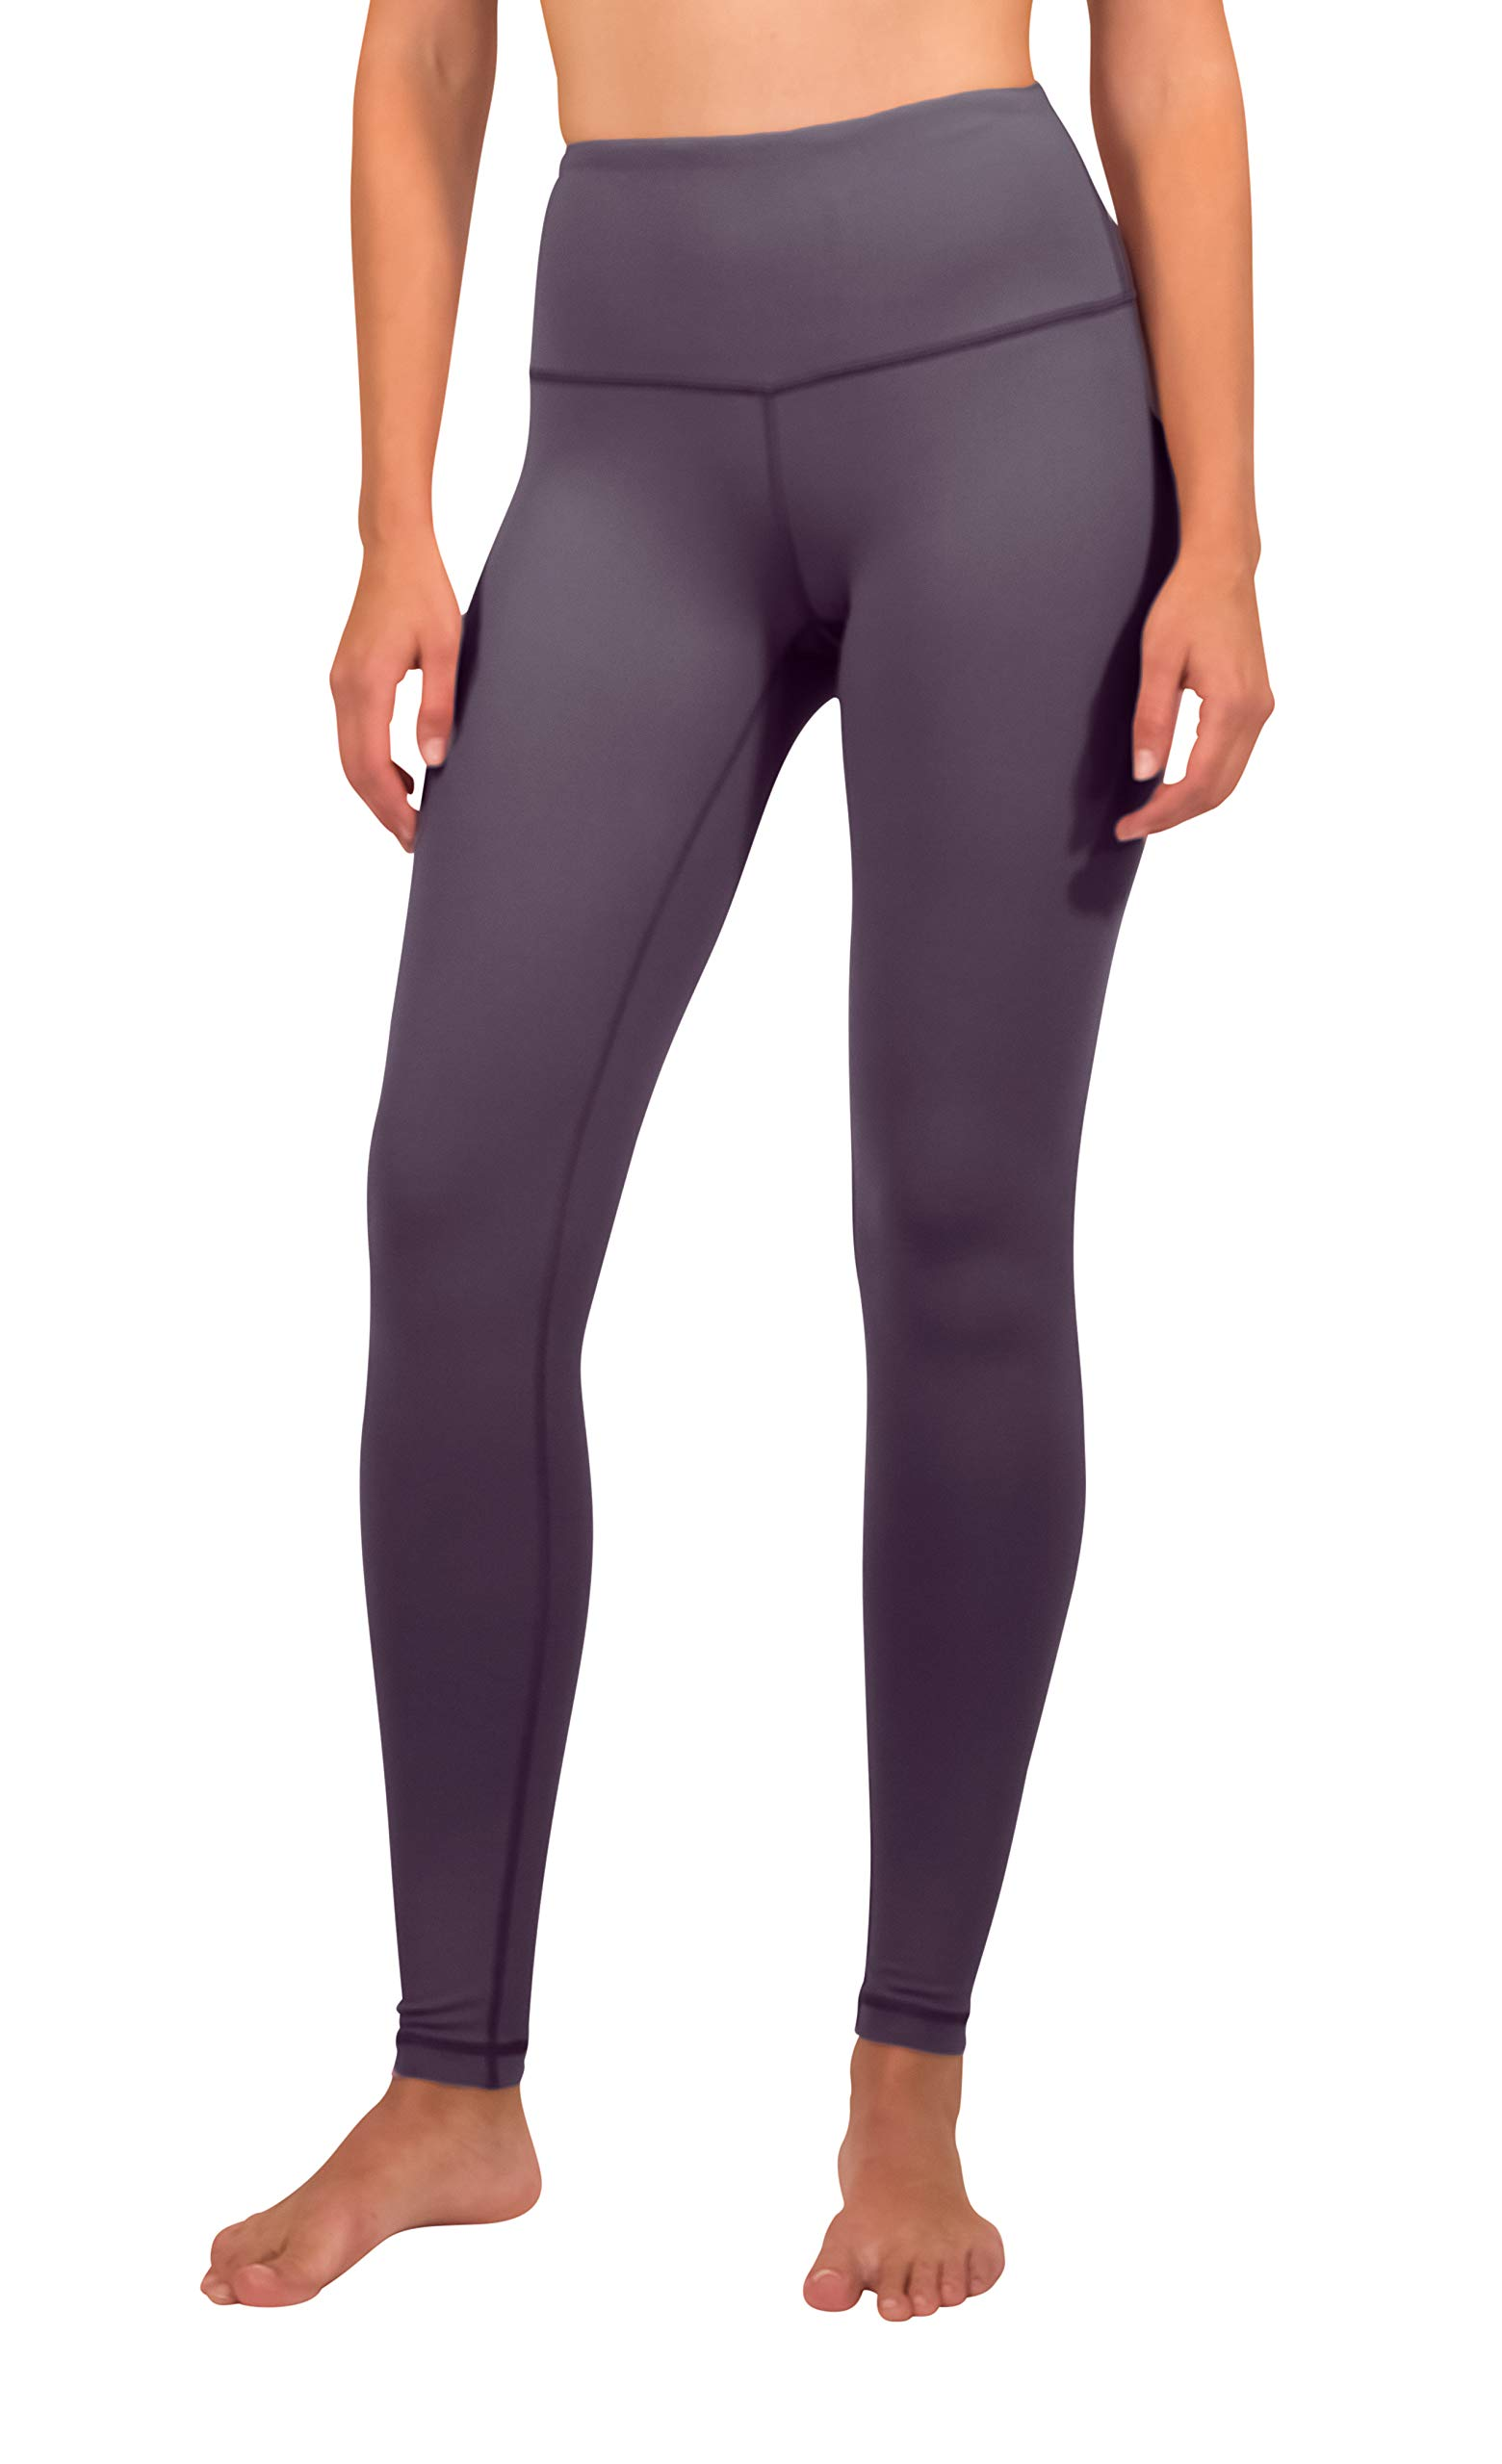 90 Degree By Reflex - High Waist Power Flex Legging - Tummy Control - Summer Fig - XL by 90 Degree By Reflex